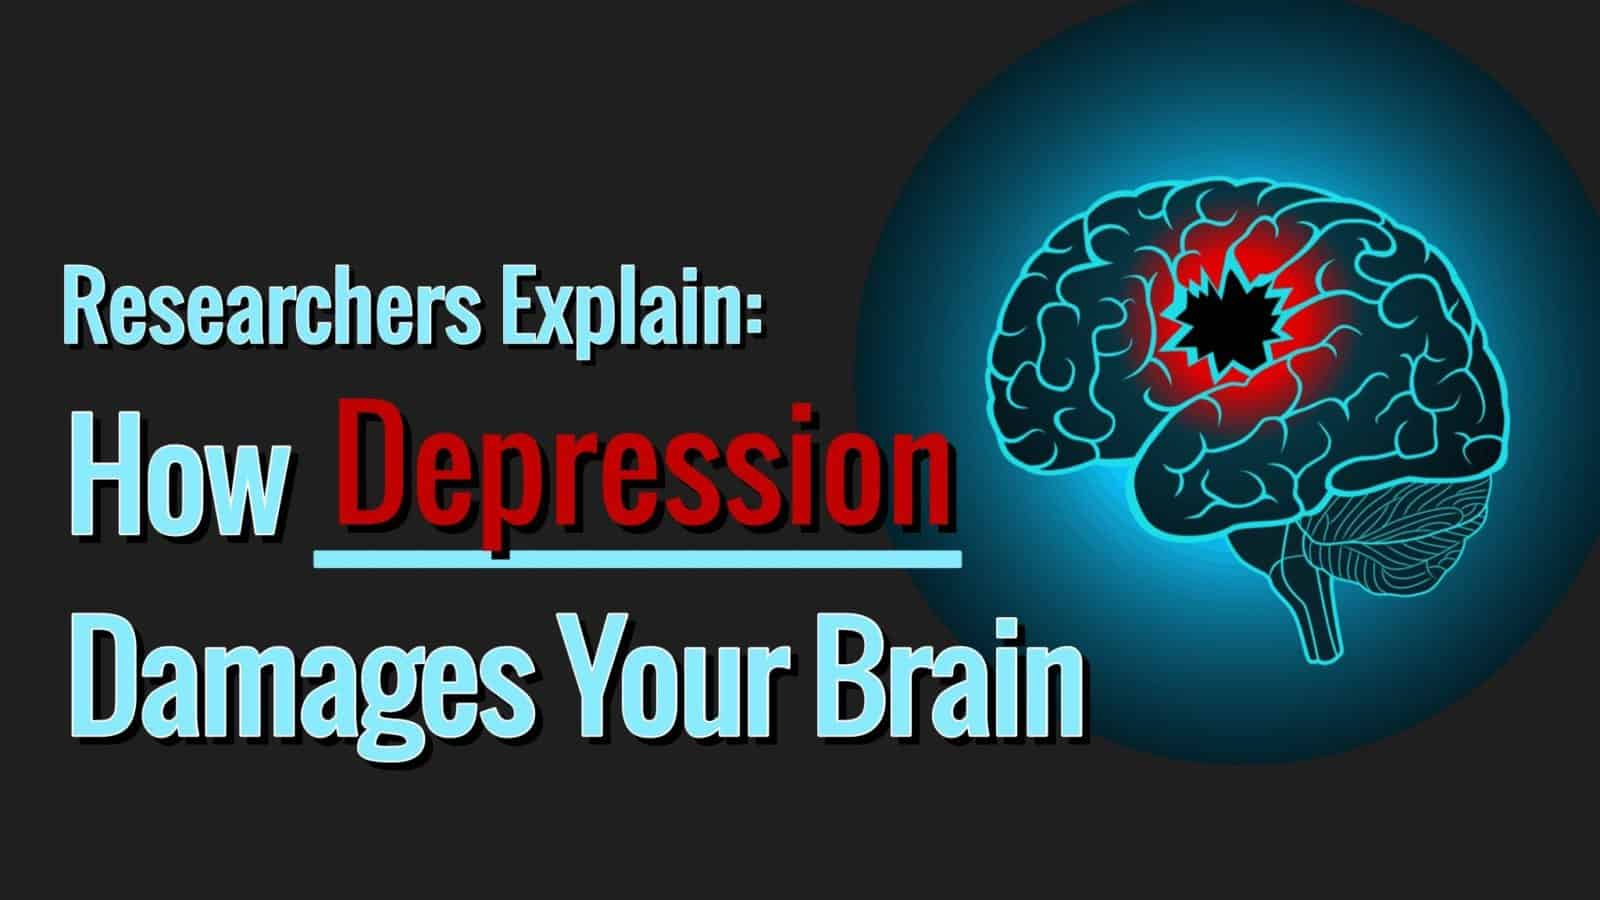 Researchers explain how depression damages parts of your brain ccuart Images